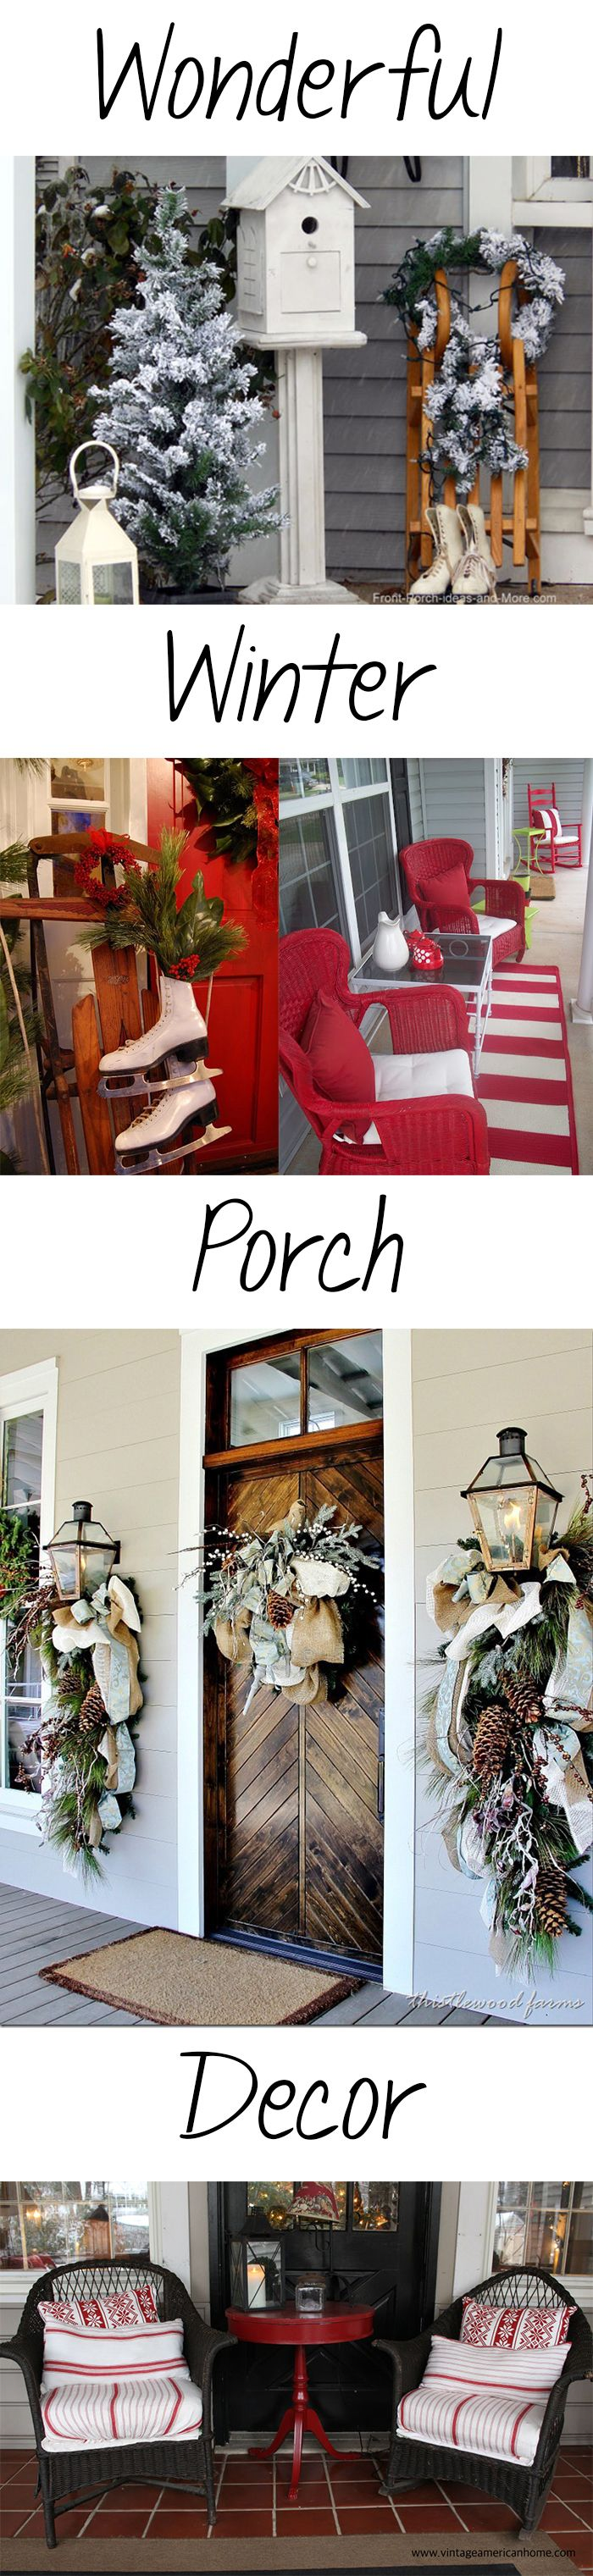 Take a look at these adorable ideas for making your winter porch decor memorable this year! #winterdecor #homedecor